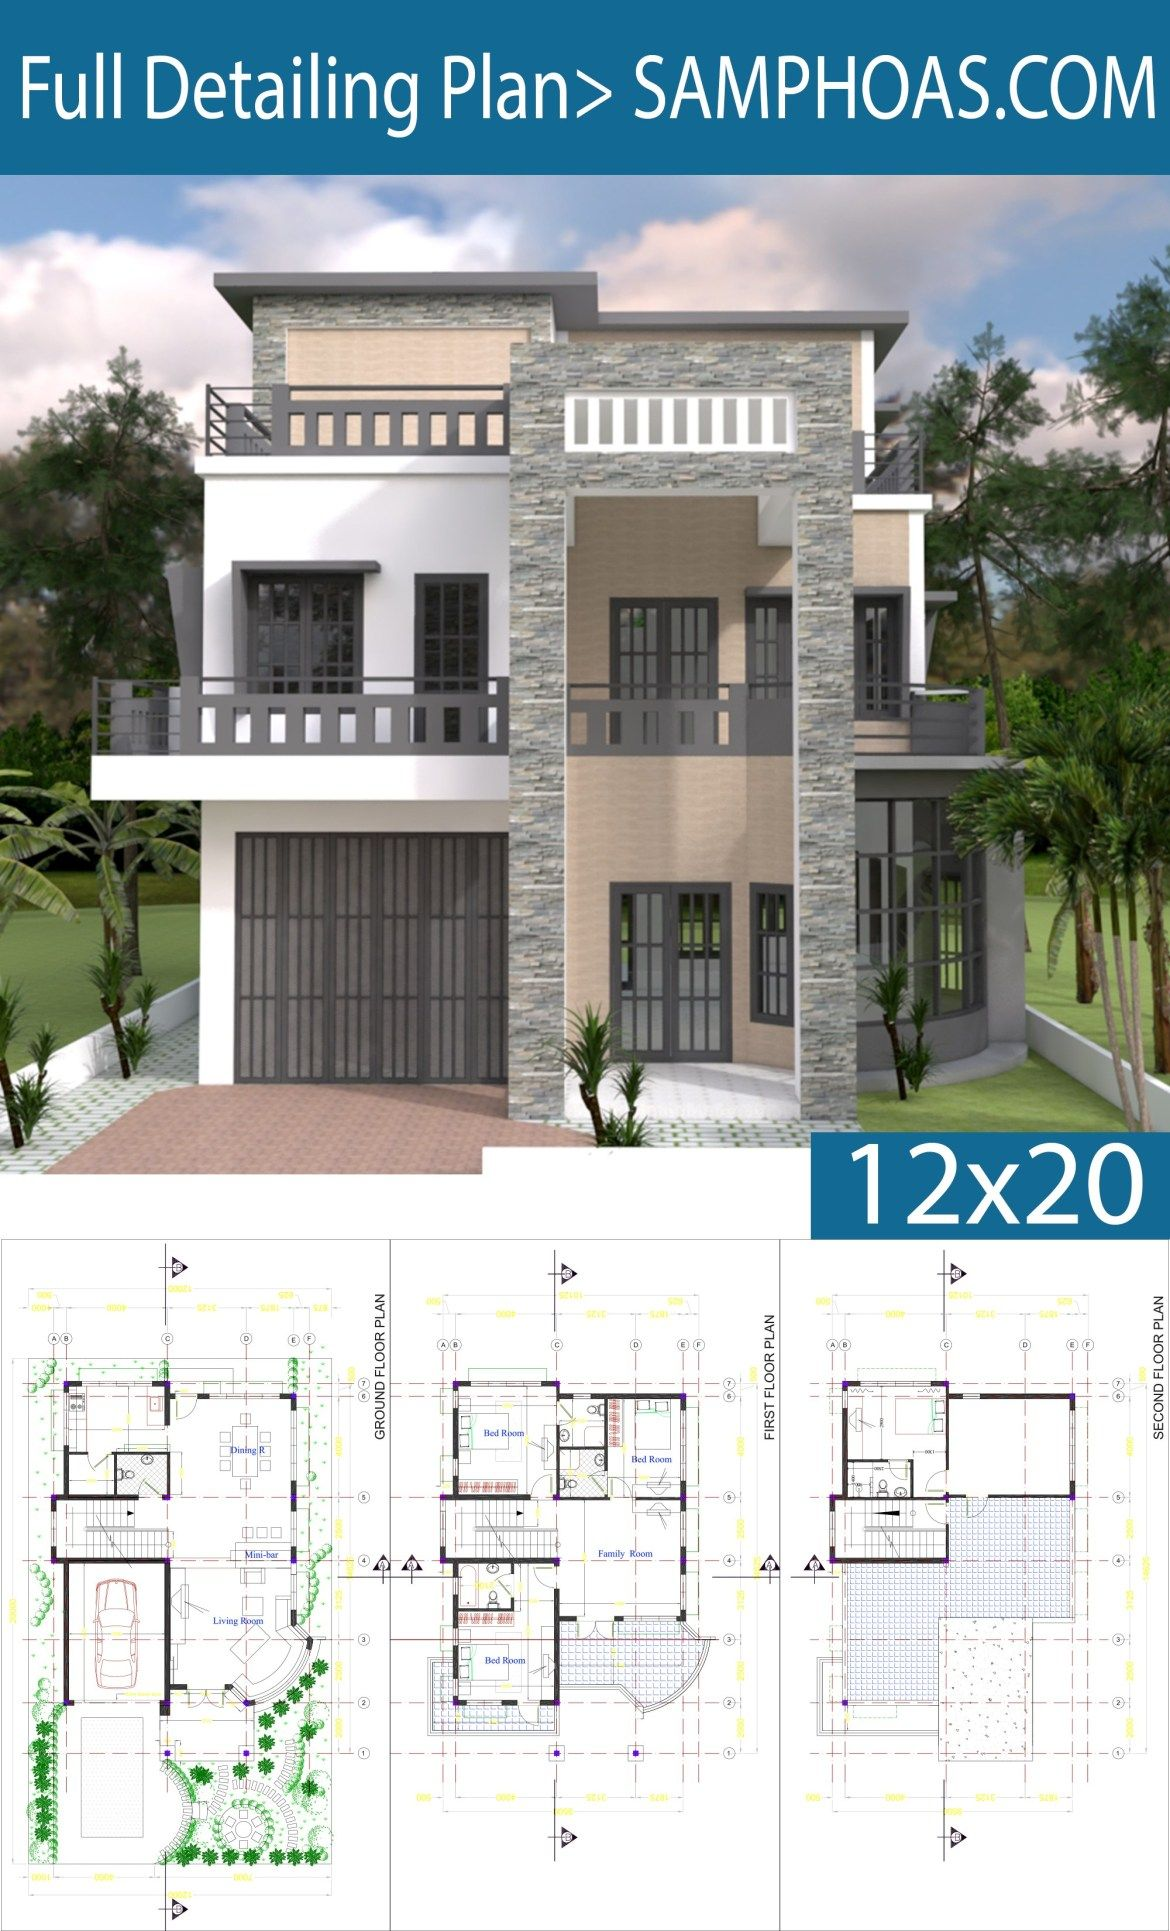 Modern House Plan 9x14 5m With 4 Bedrooms Samphoas Plansearch Modern Bungalow House Modern House Plan House Plans